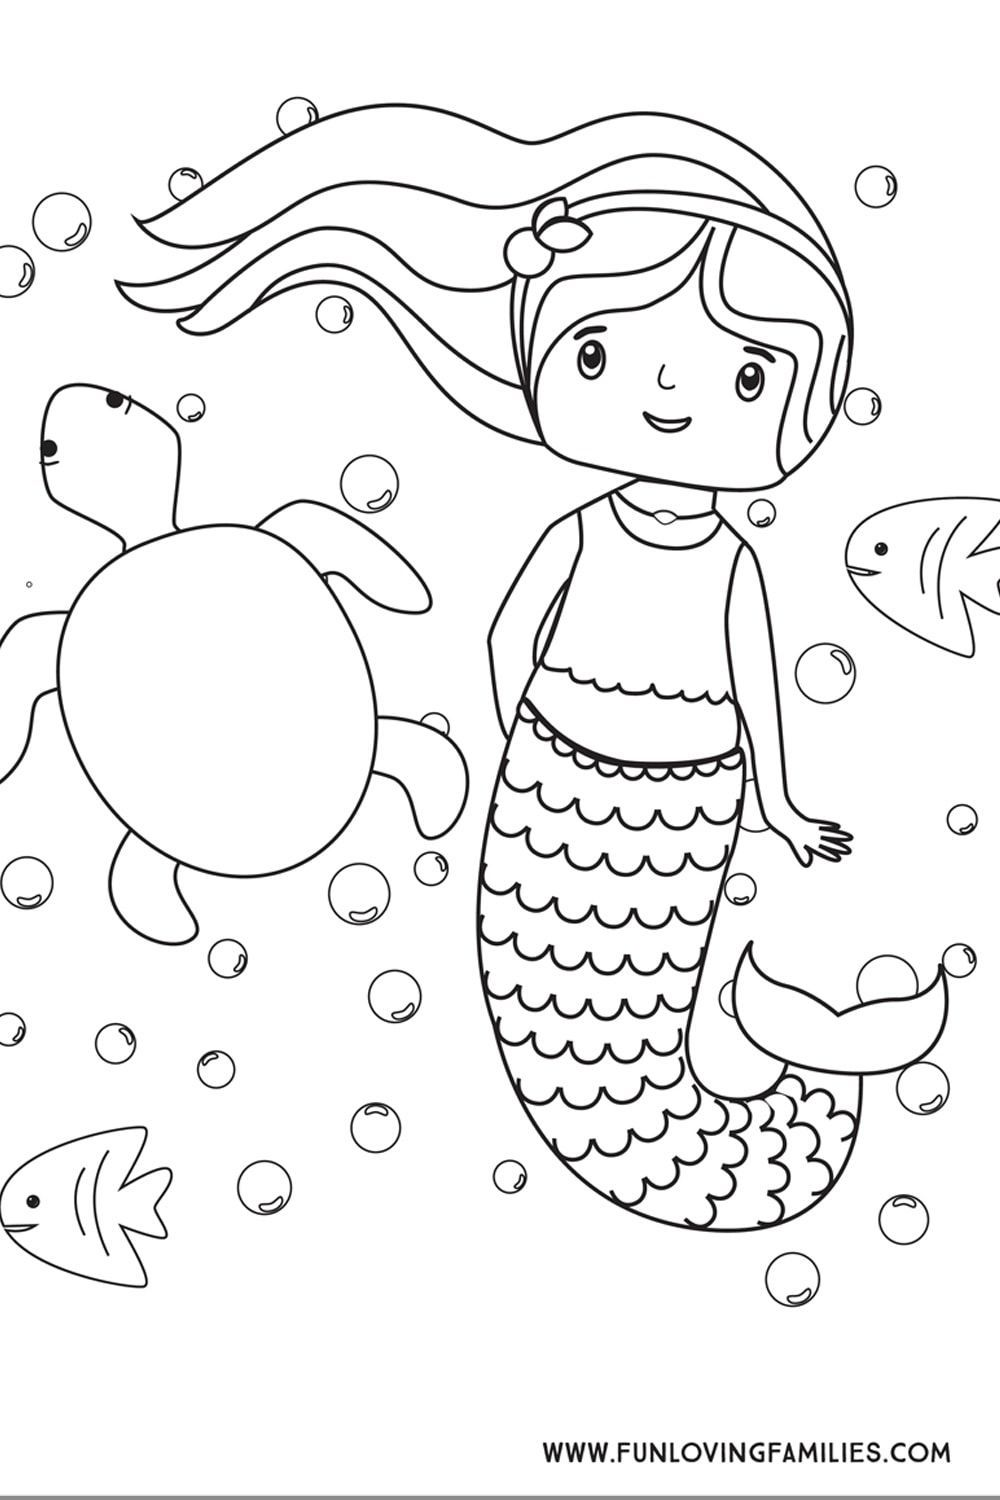 Pin On Mermaid Coloring Pages